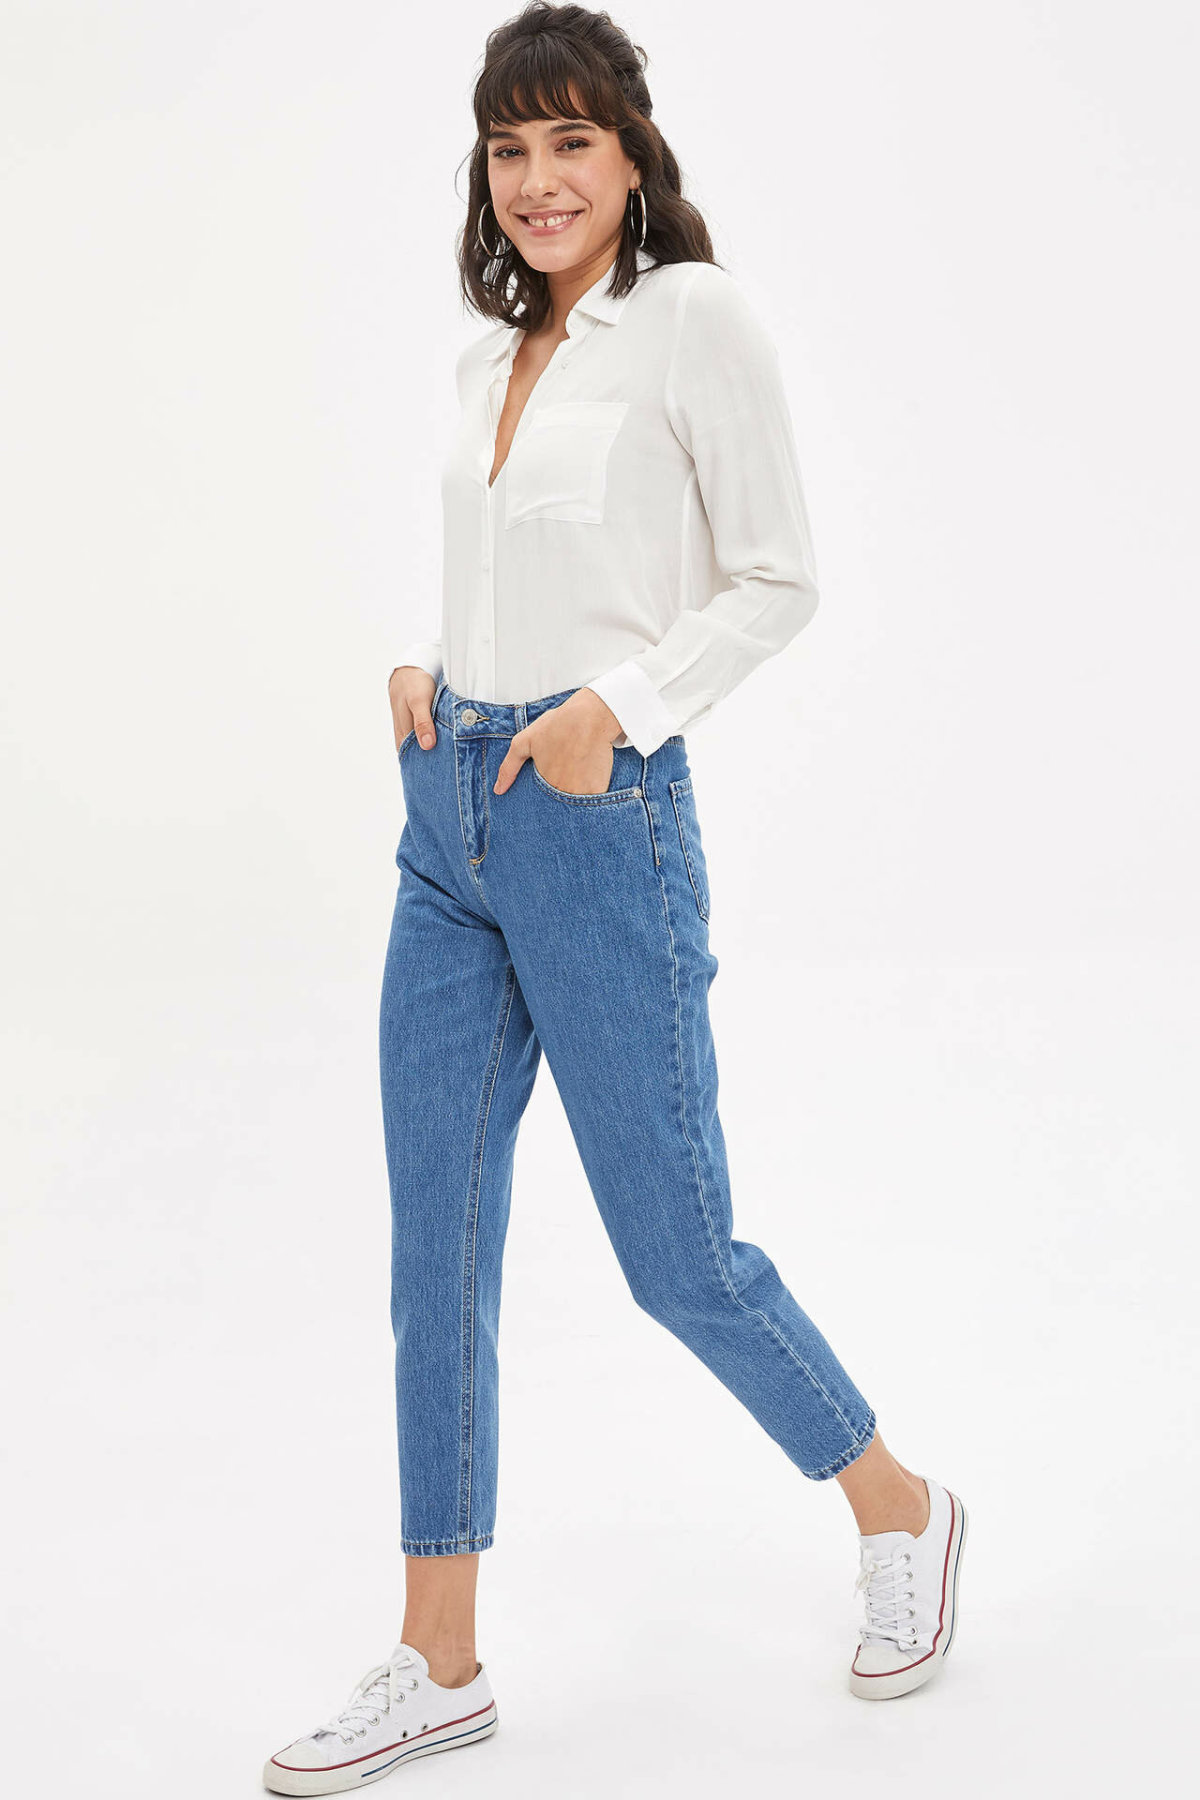 DeFacto Woman Spring Blue Denim Jeans Women Casual NInth Denim Pants Female Denim Trousers-K9063AZ20SP